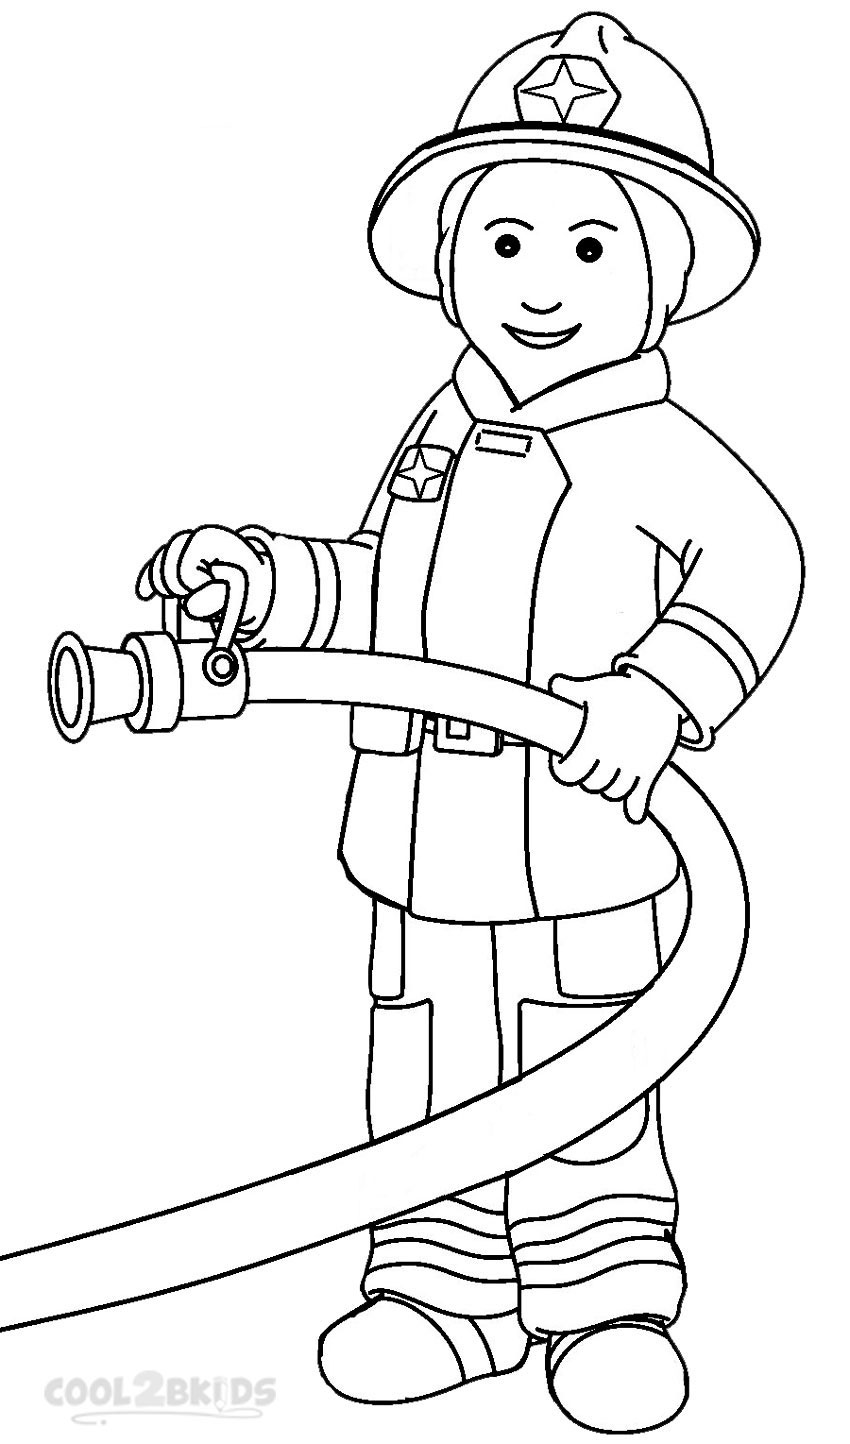 fireman and policeman coloring pages - photo#34